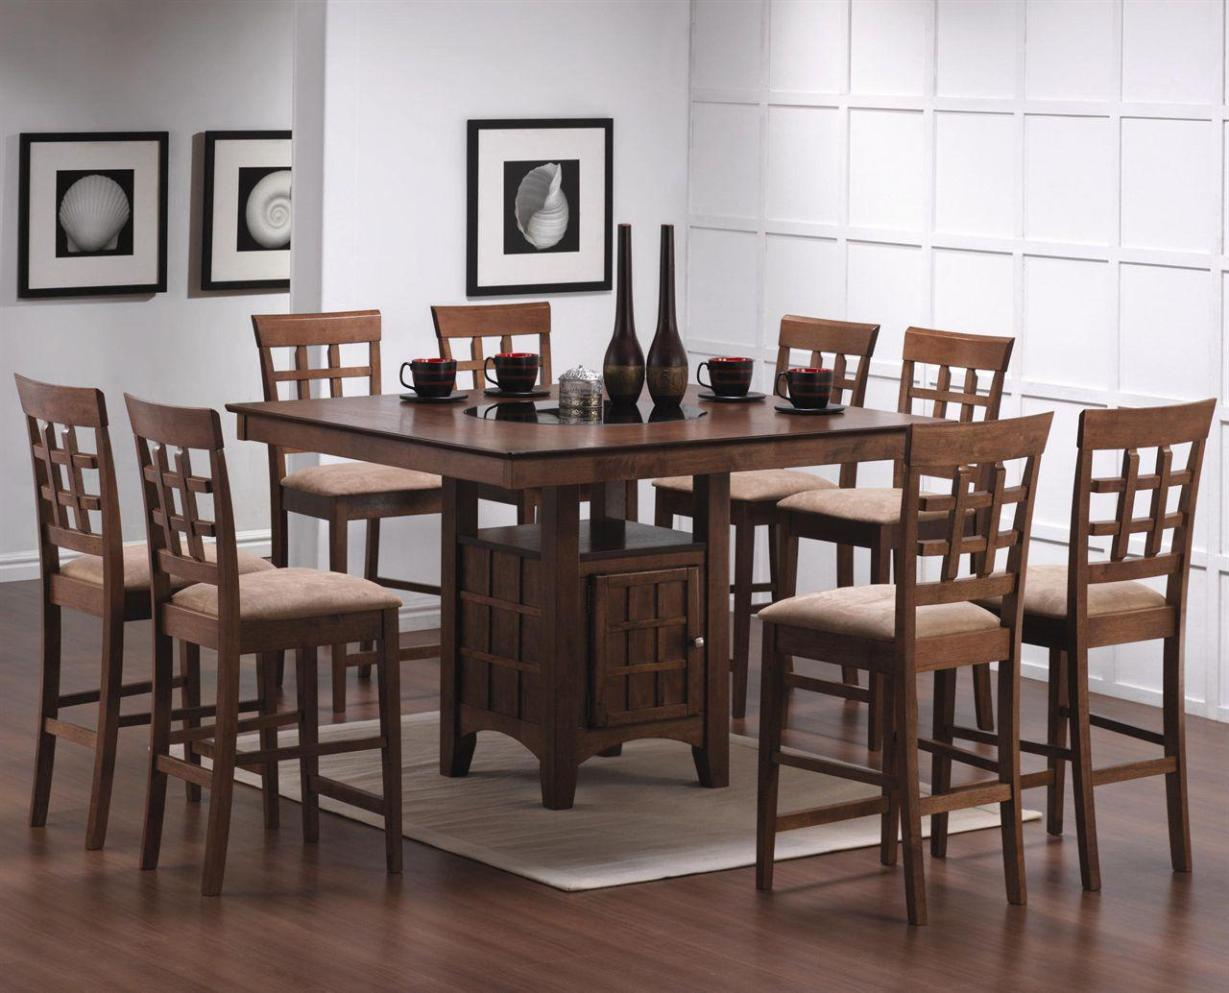 Image of: Pub Style Dining Sets For 8